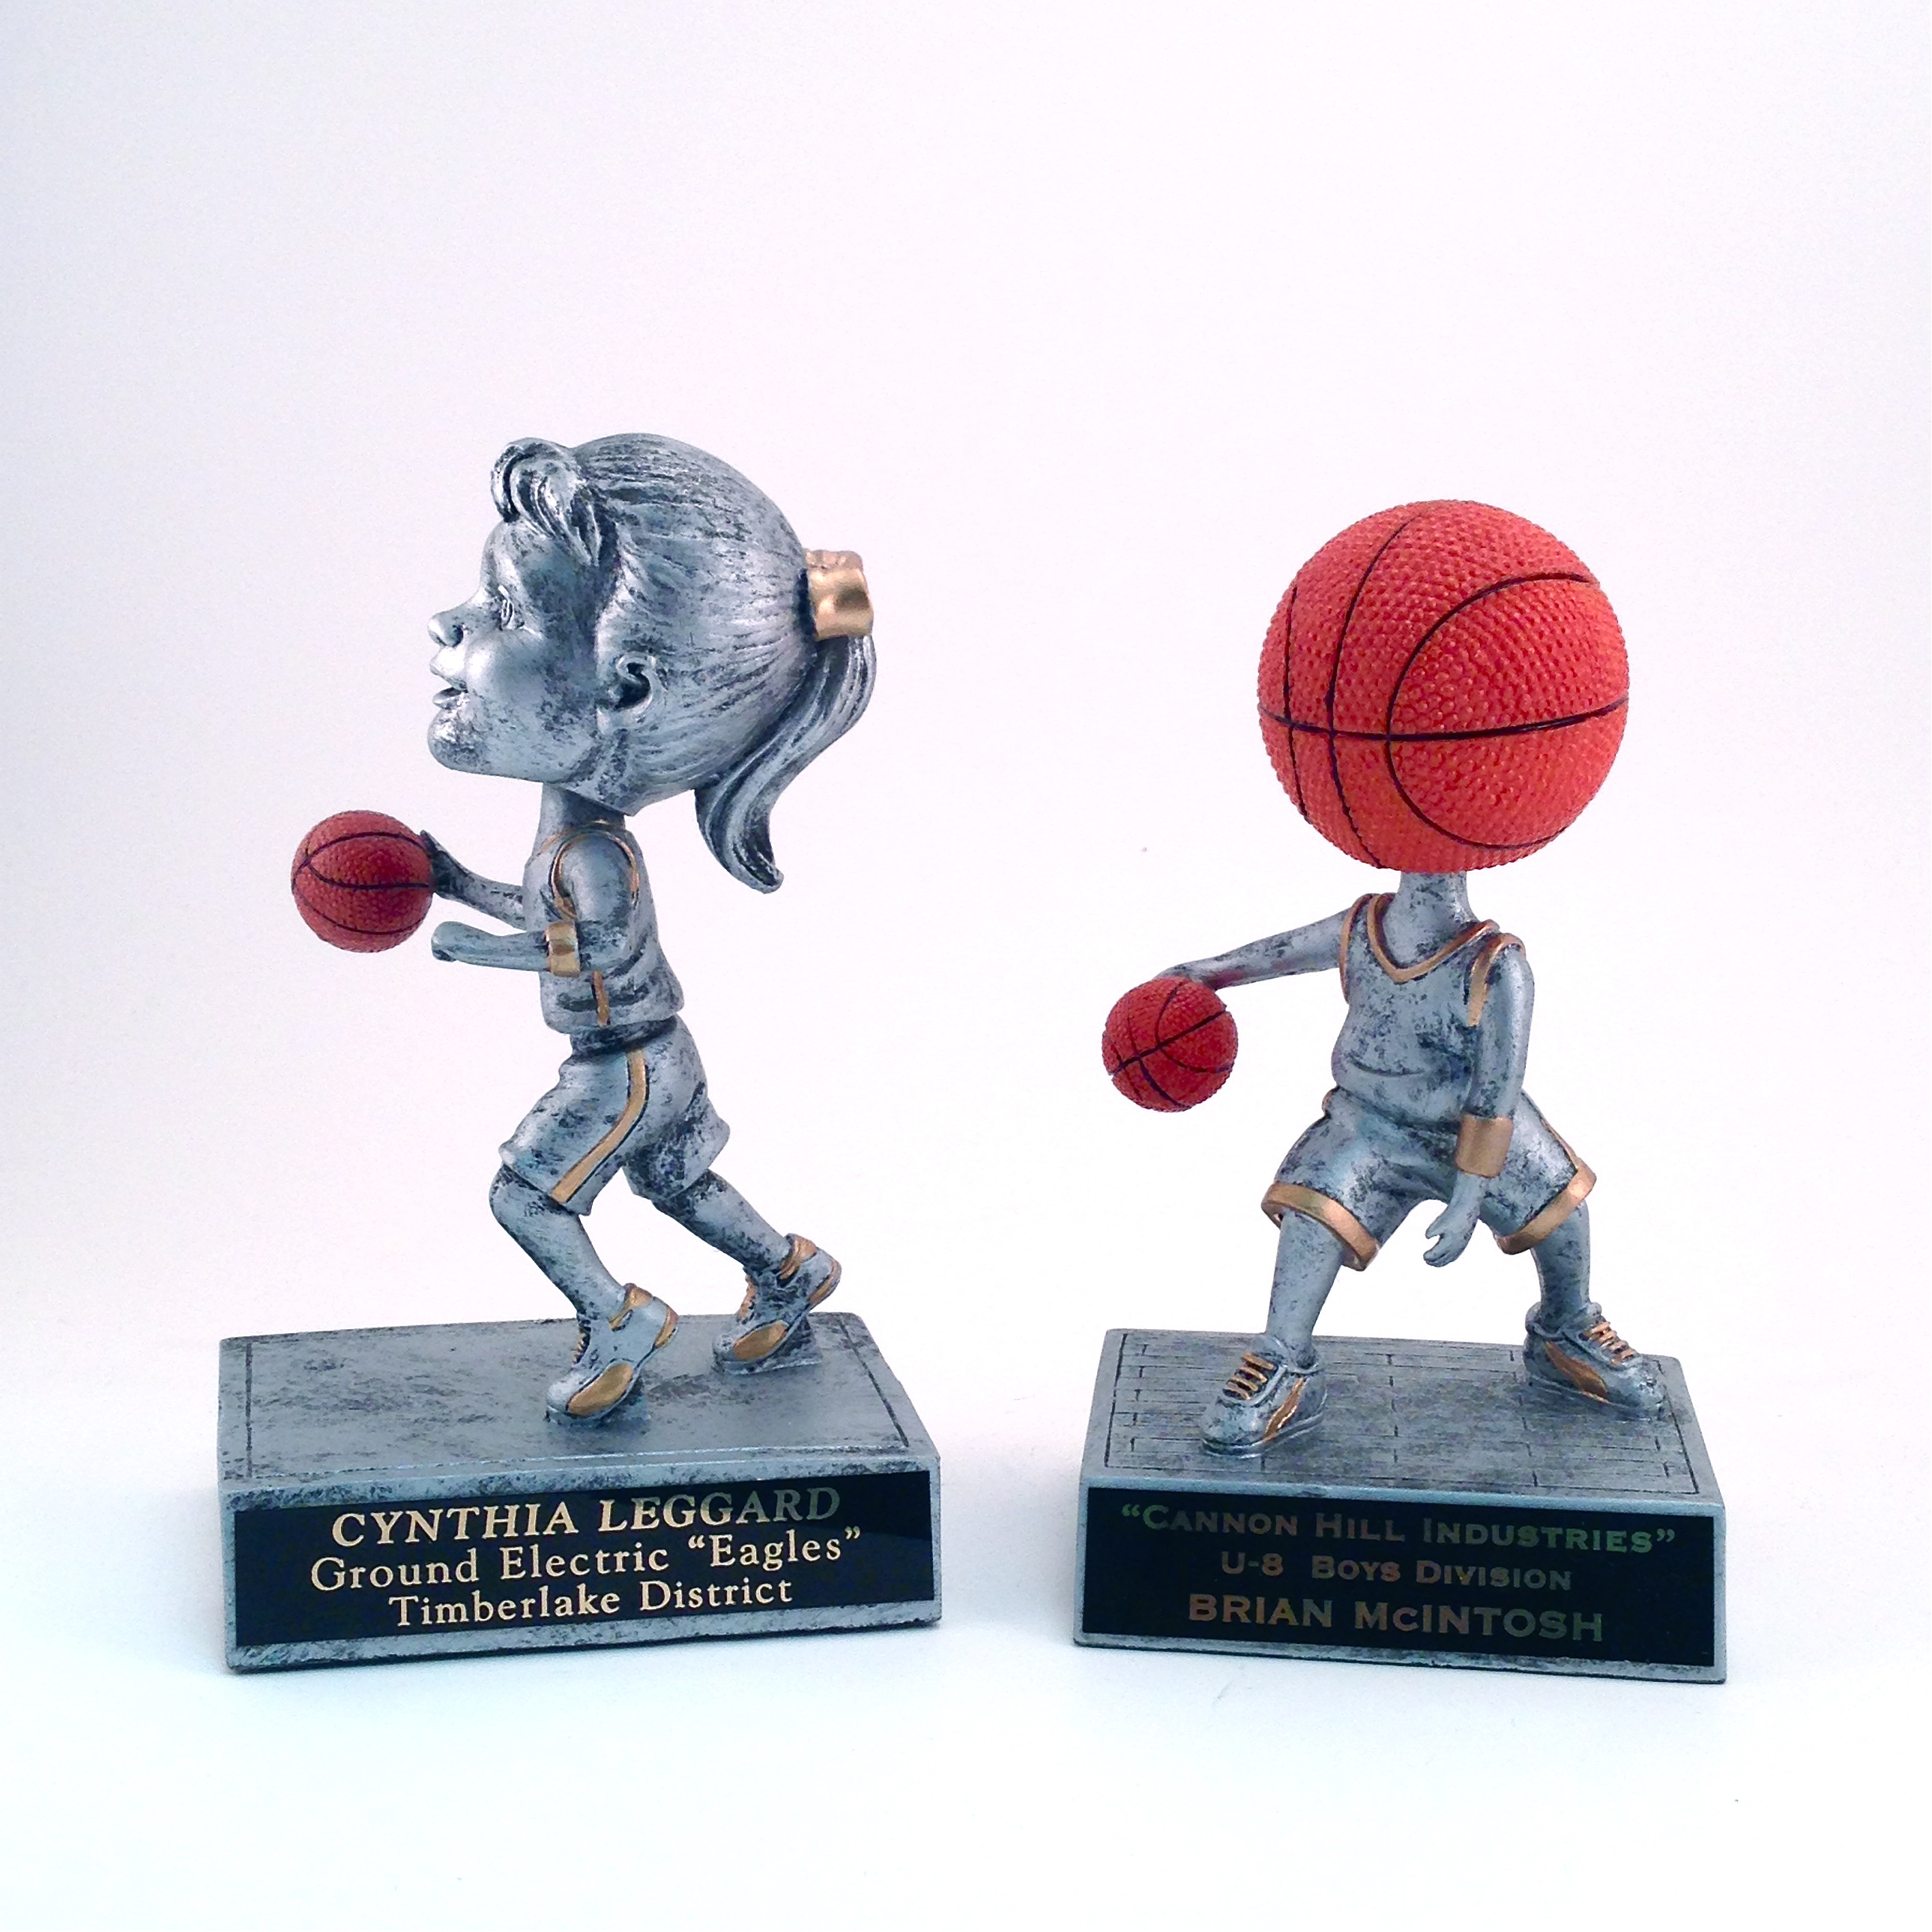 Basketball Bobbleheads -  $18.02 each  (Includes tax & engraving) Specify Male (not pictured), Female, or Basketball Bobblehead. [ITEM#:  16I ]